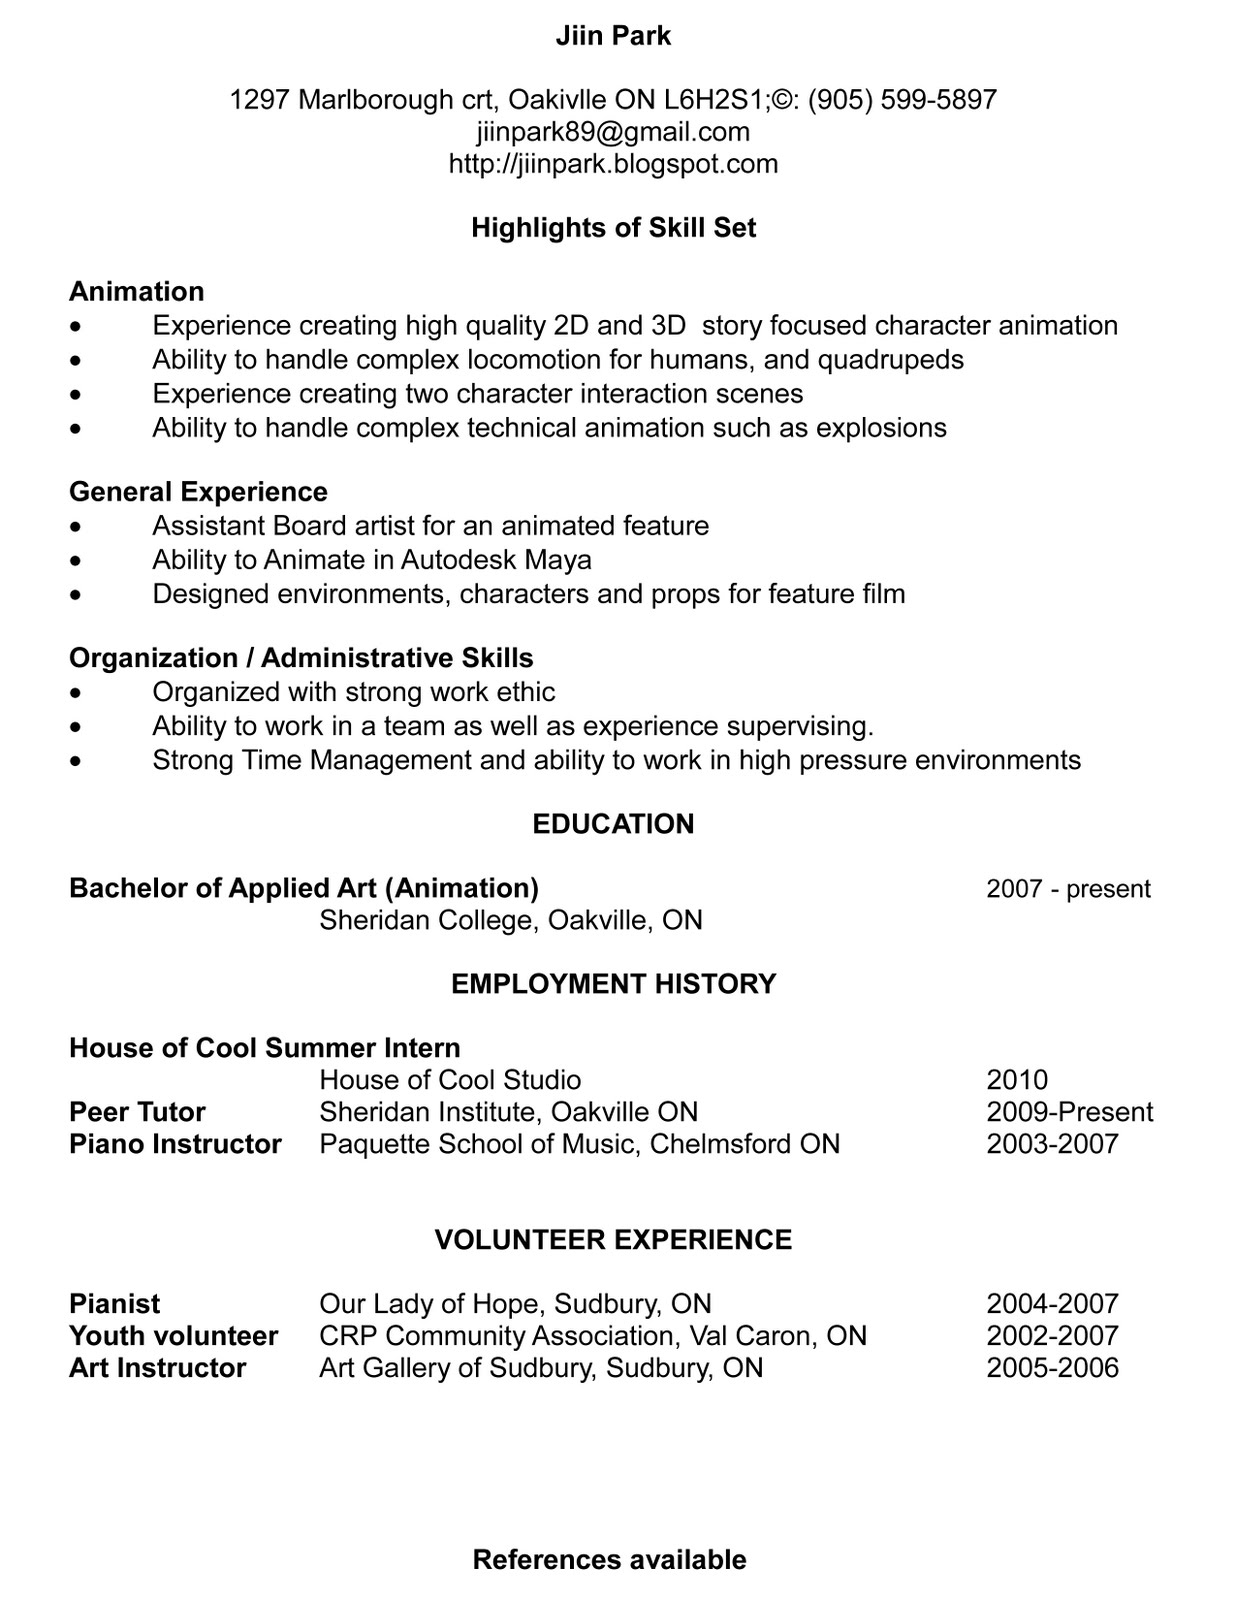 University of Michigan Official Publication my resume online free ...